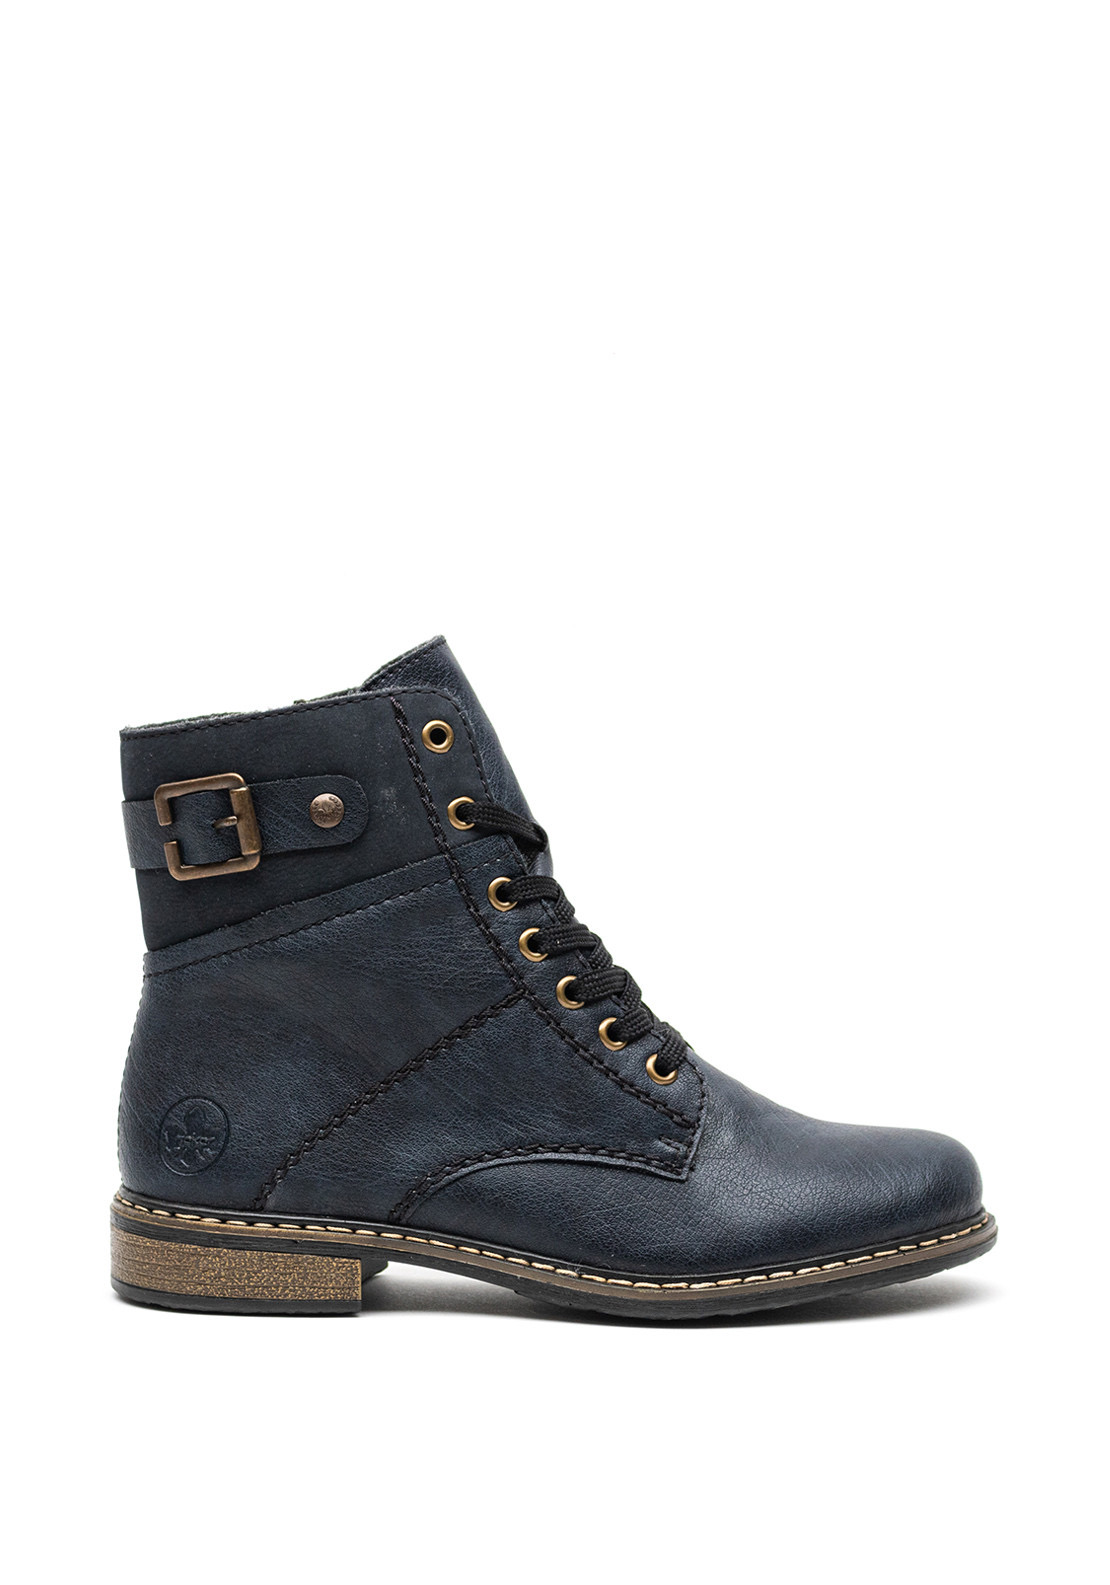 71242-15 Rieker navy laced boot